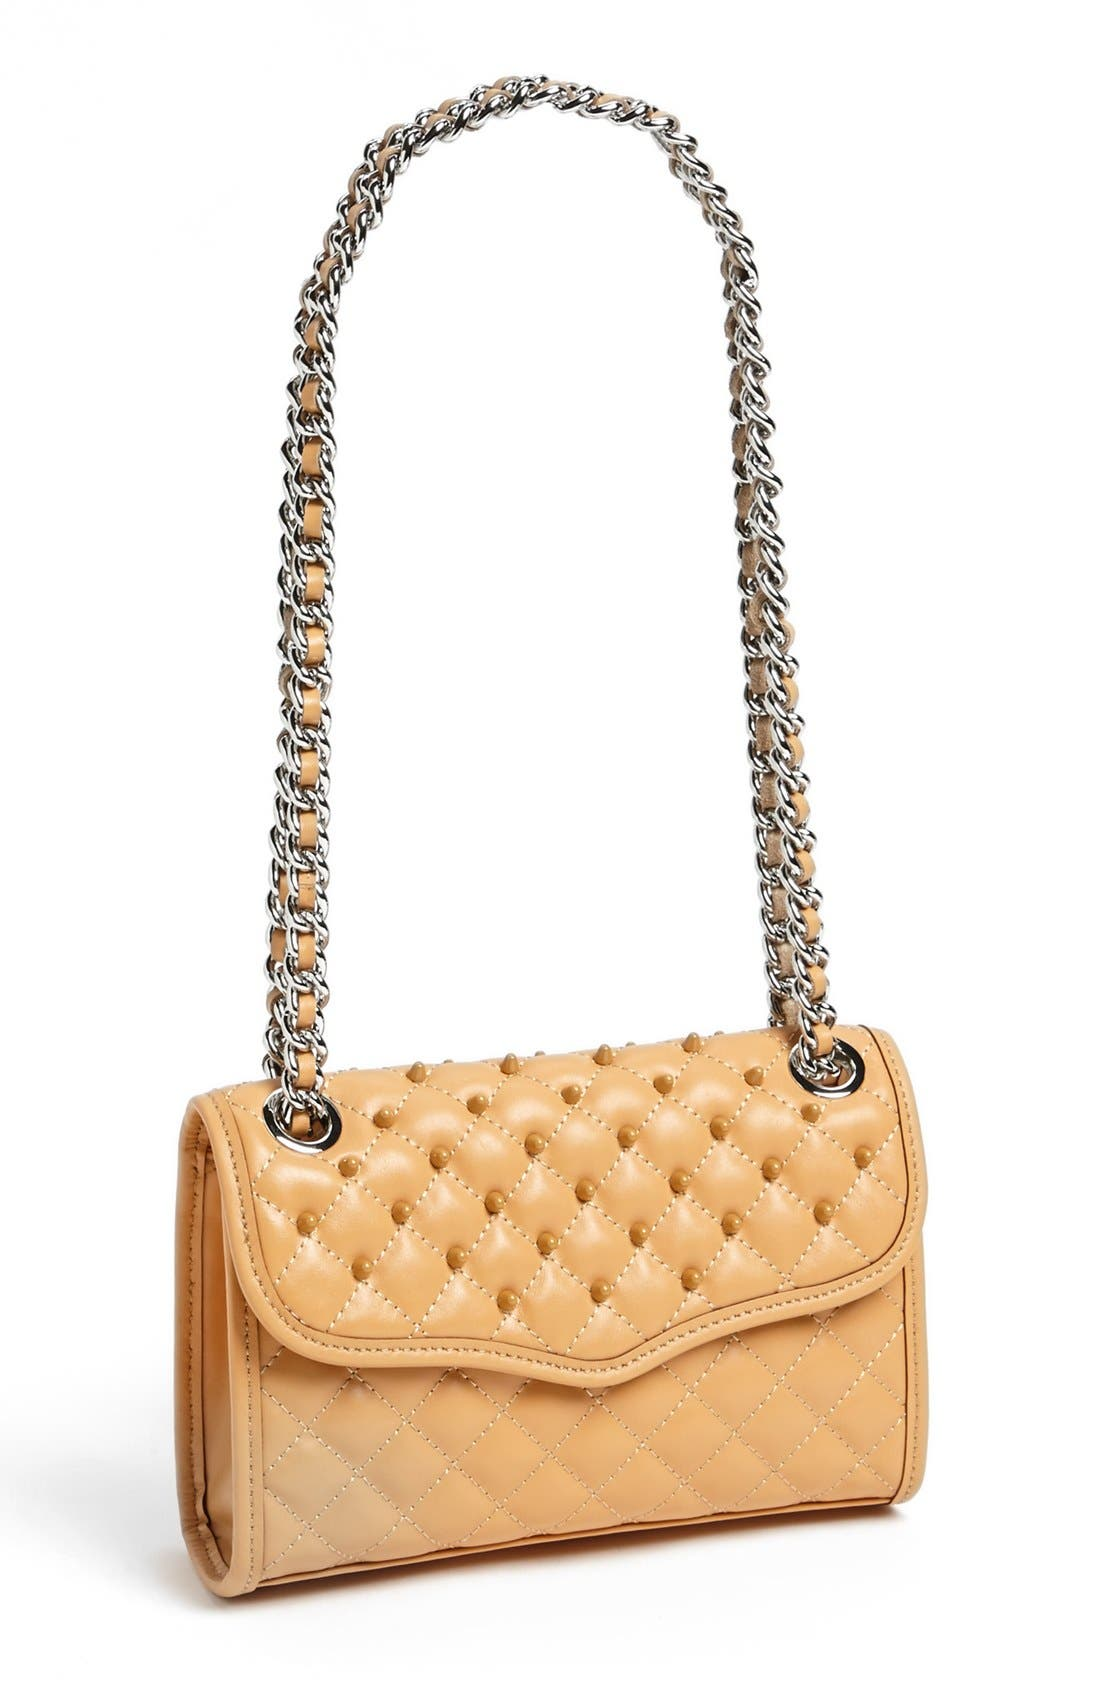 Alternate Image 1 Selected - Rebecca Minkoff 'Affair - Mini' Quilted Convertible Crossbody Bag